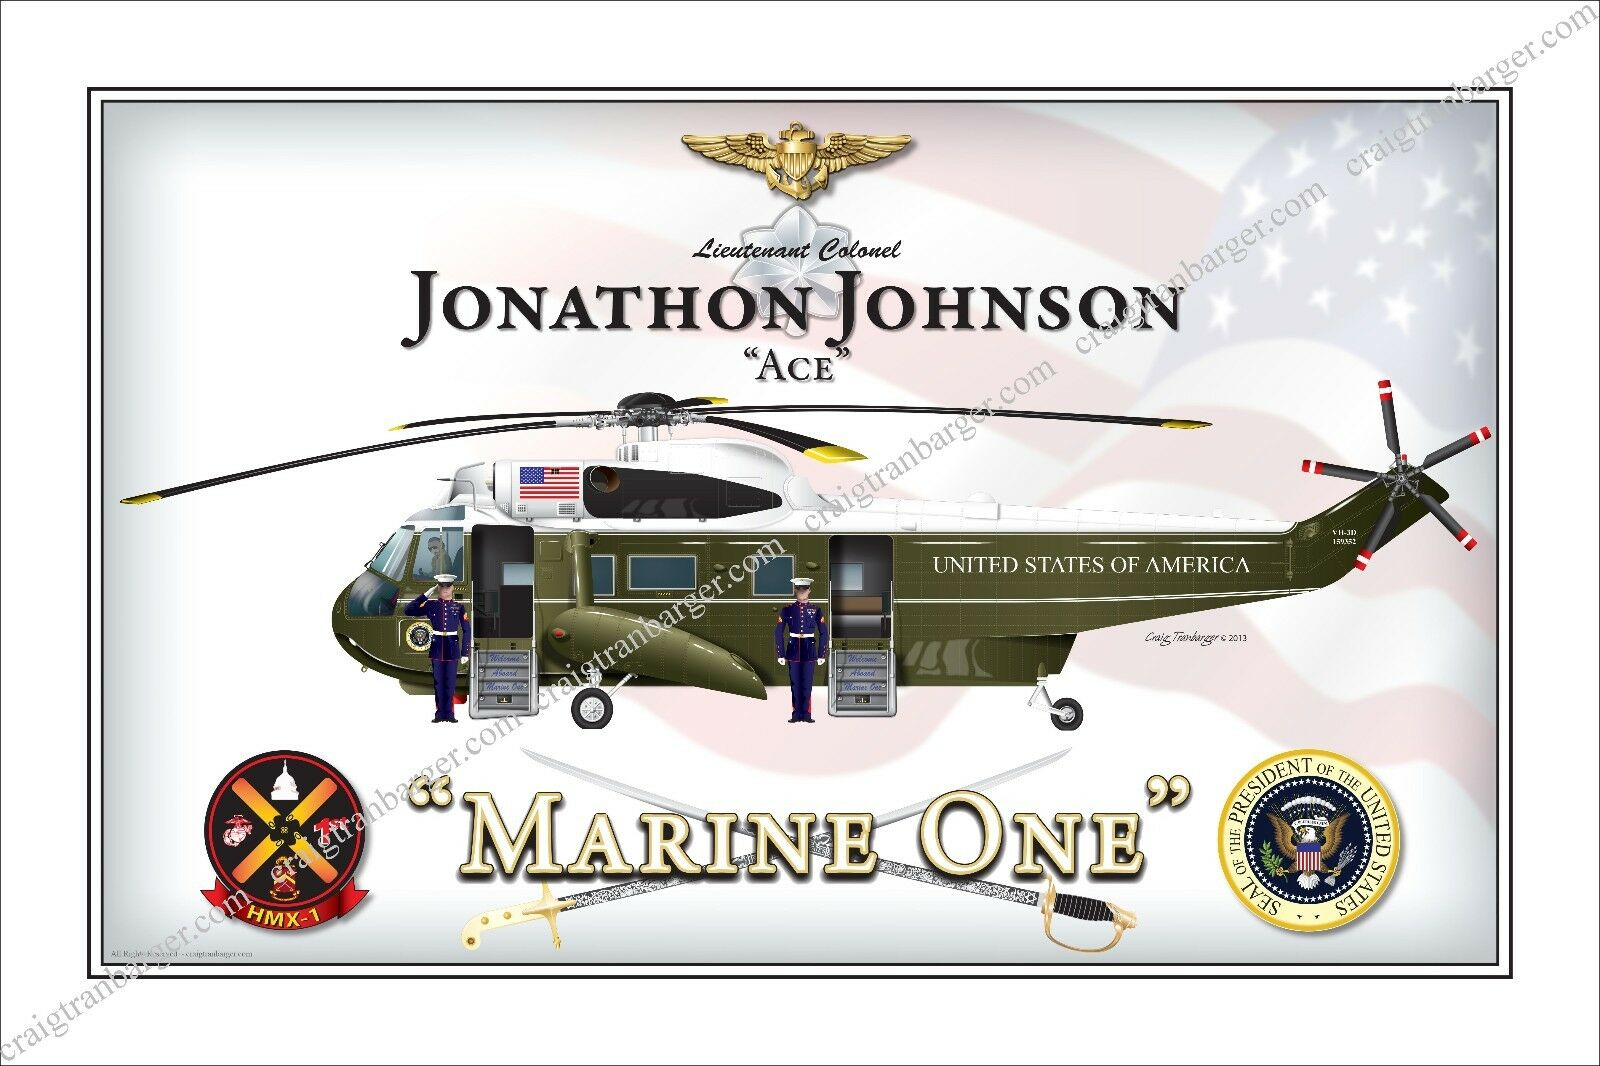 1//72 Sea King SH-3h US President Helicopter Marine One Model Water Slide Decal